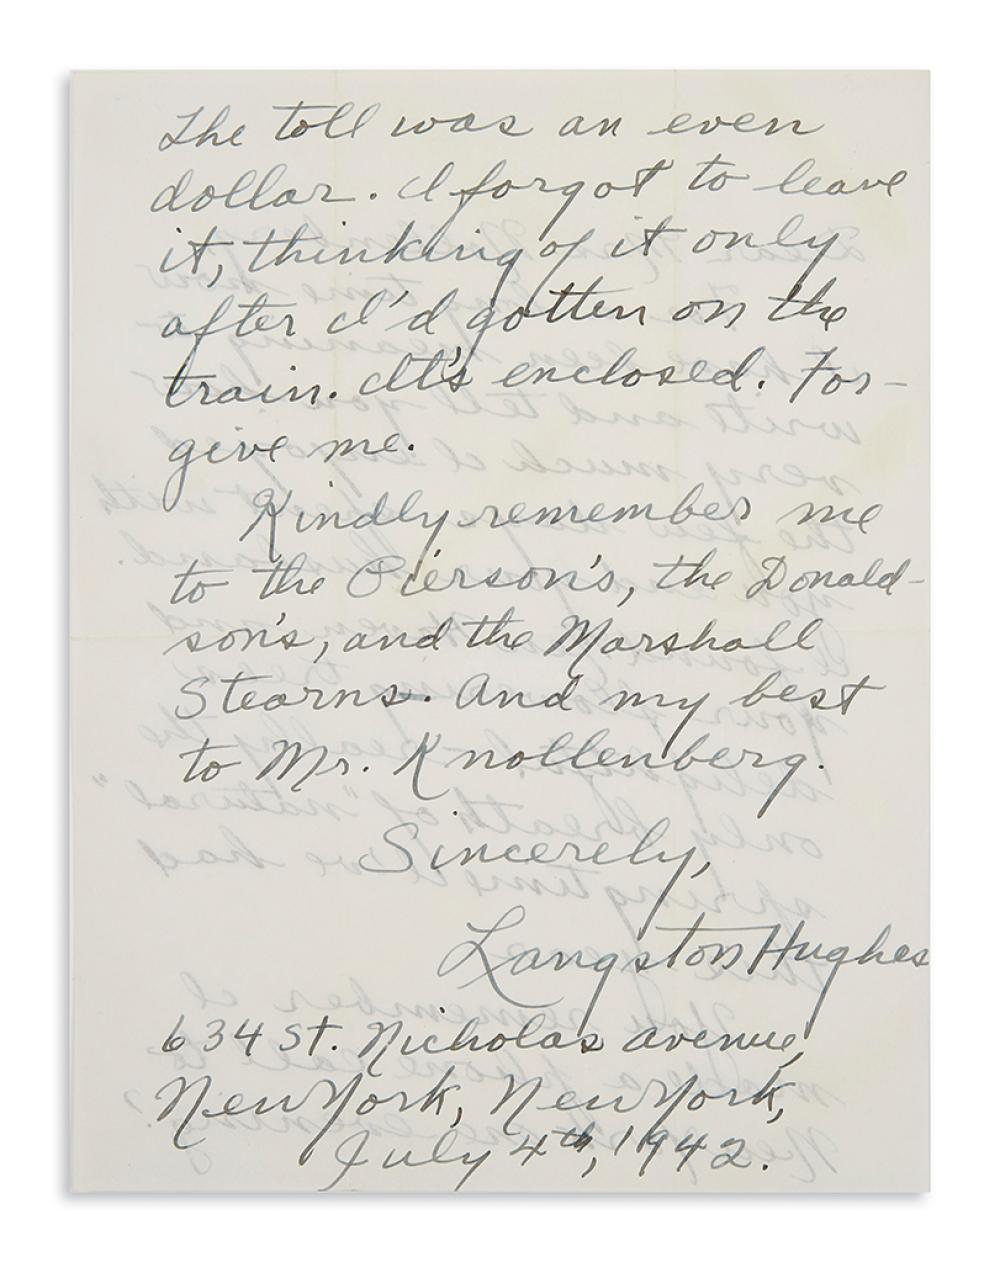 (LITERATURE.) Hughes, Langston. Letter to the wife of Yale's librarian, who had recently employed Hughes for a small project.